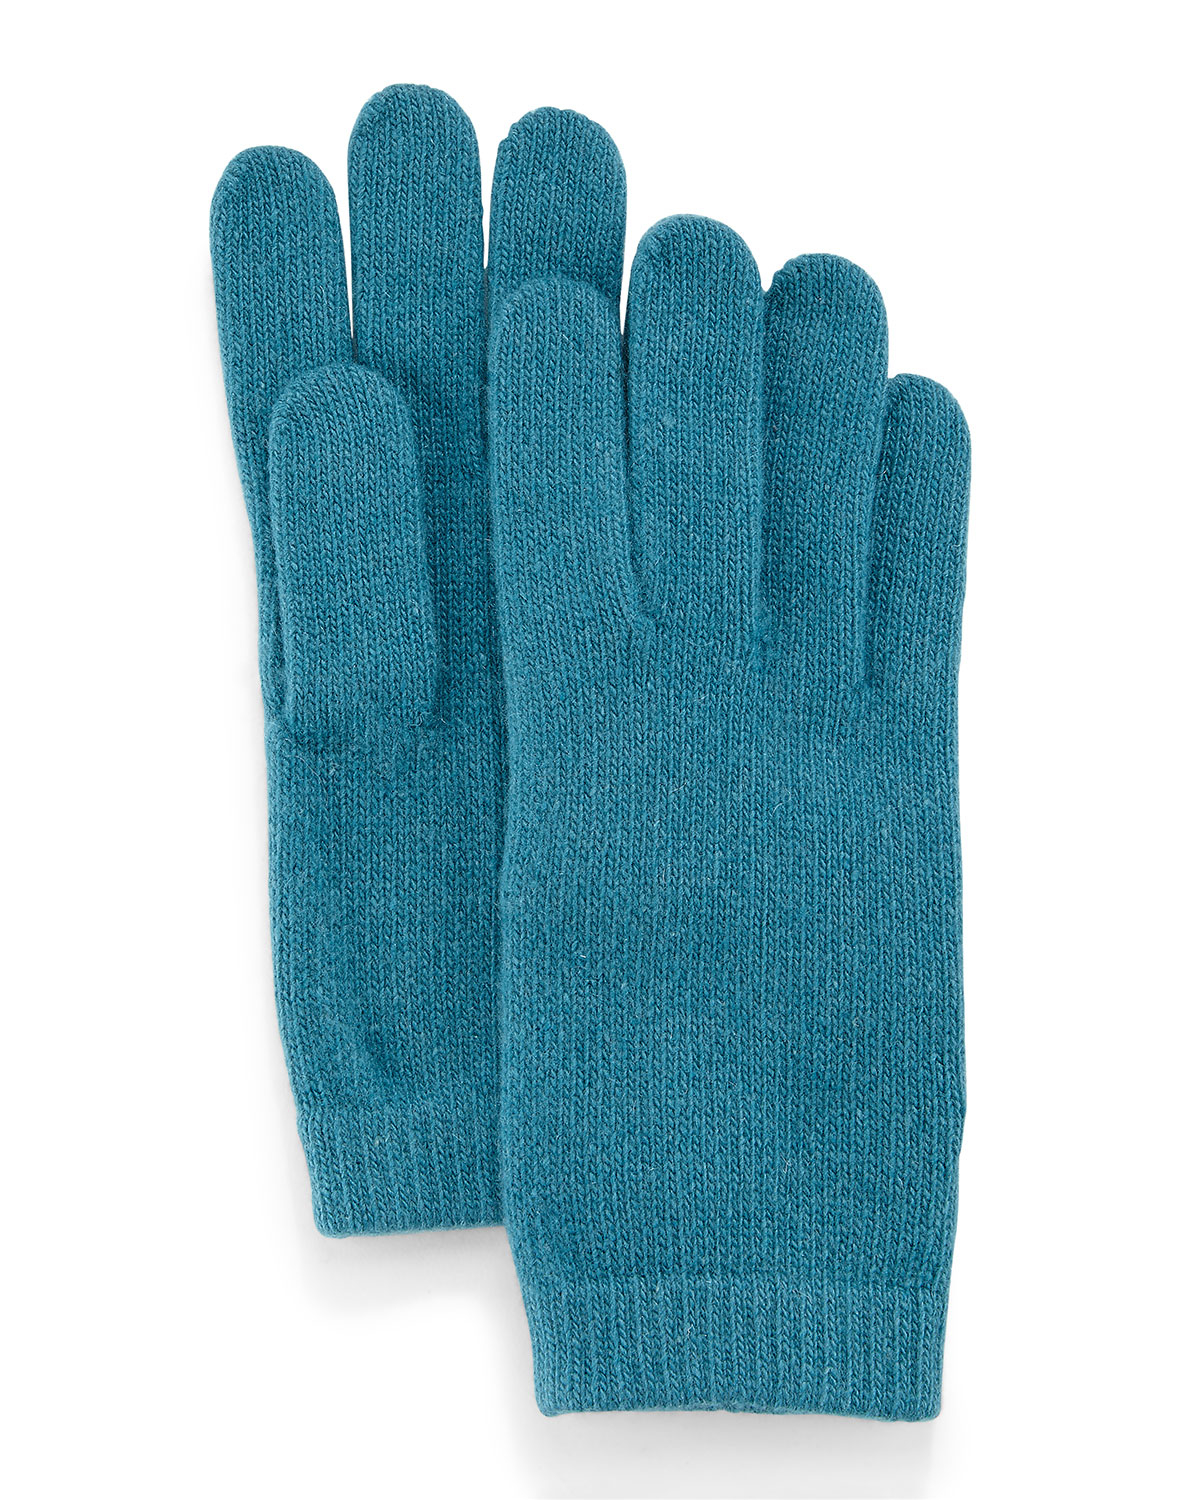 Knitting Pattern Cashmere Gloves : Portolano Cashmere Basic Knit Gloves in Teal Lyst